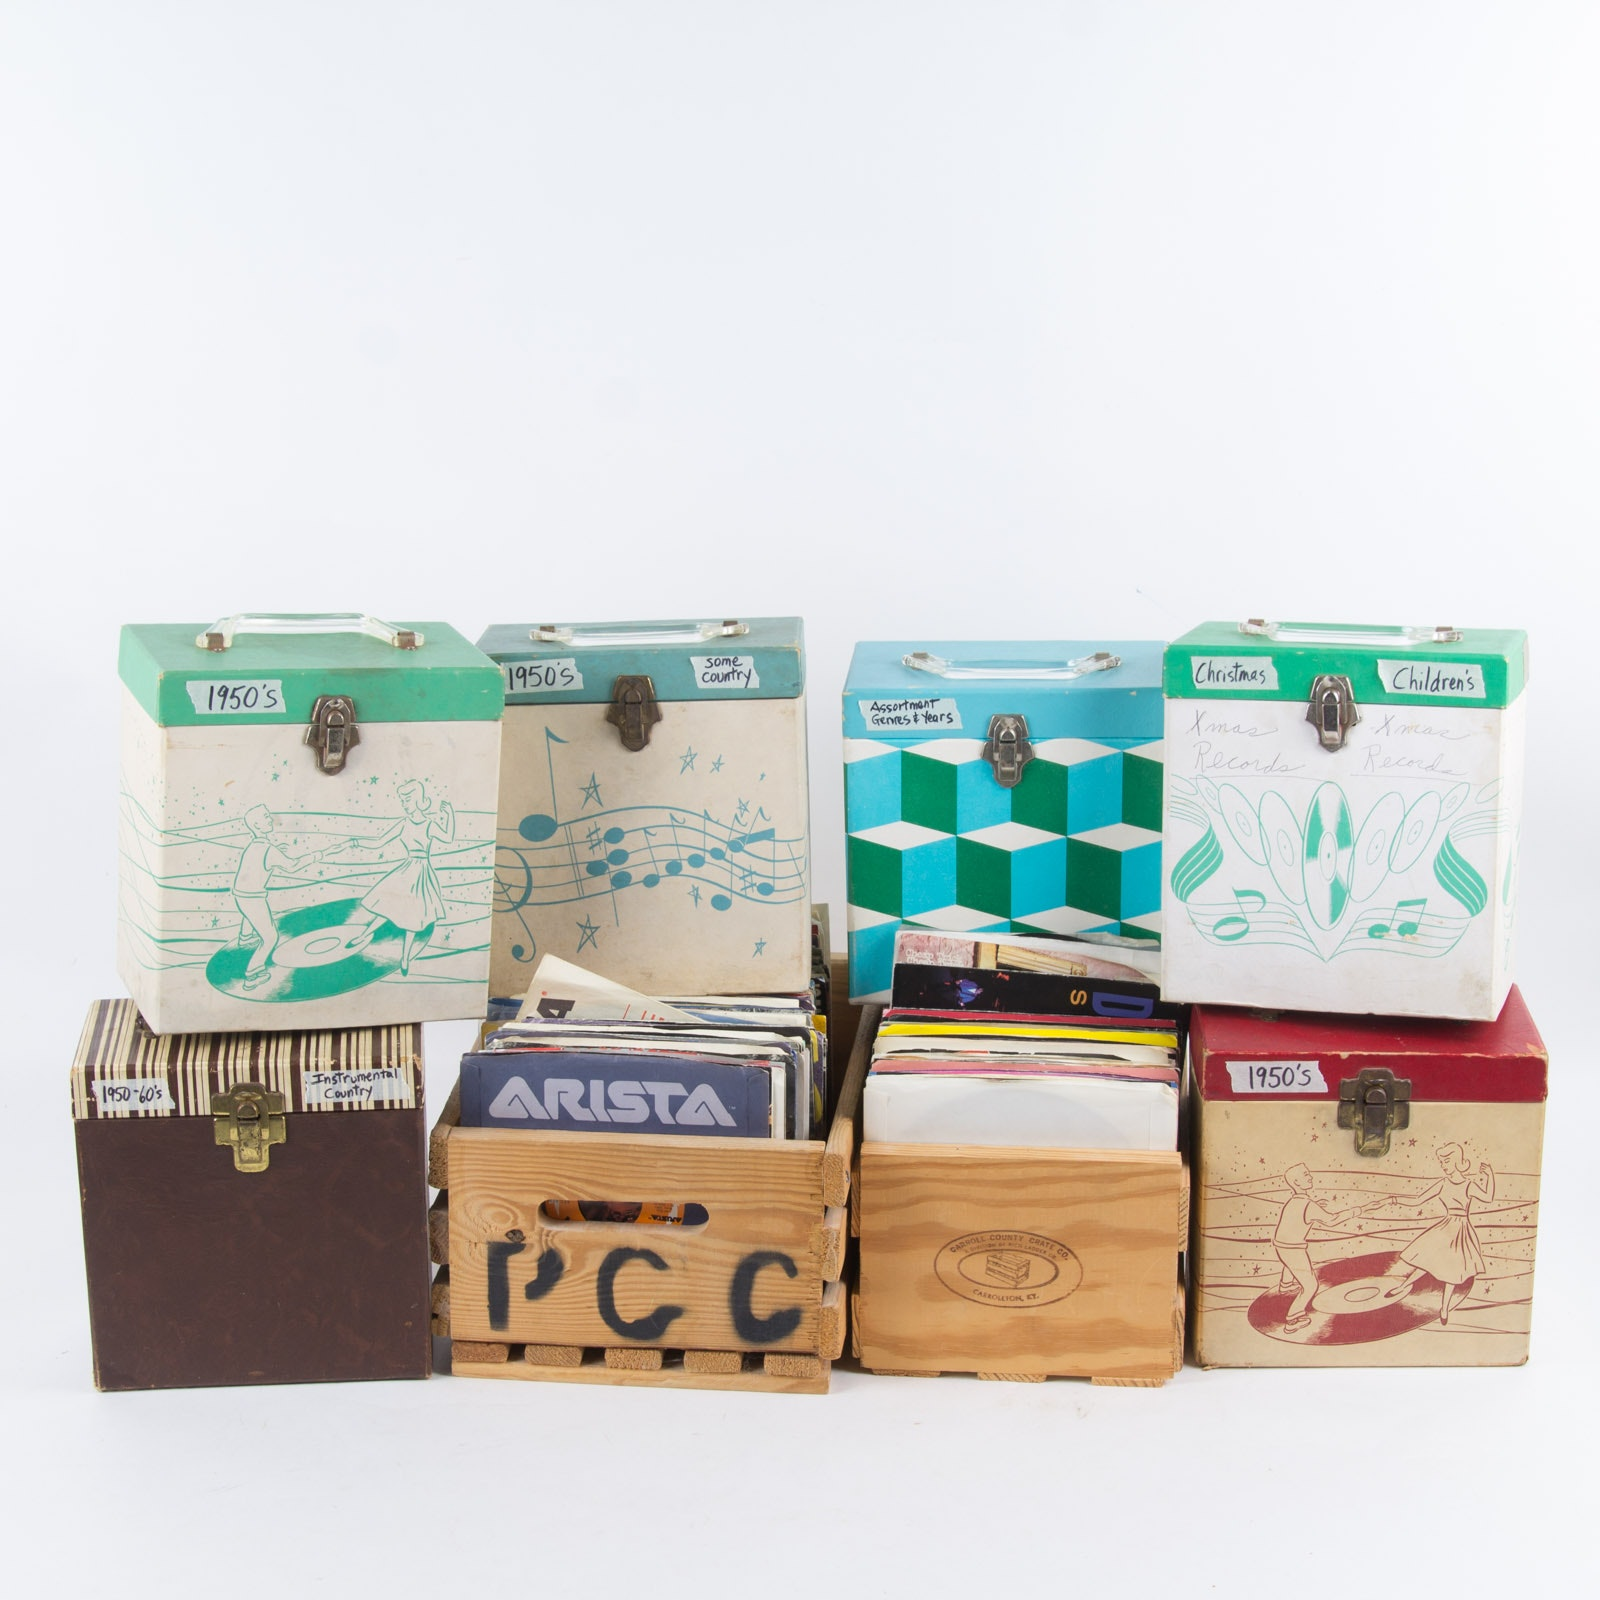 Rock/Pop Singles and Vintage Storage Boxes